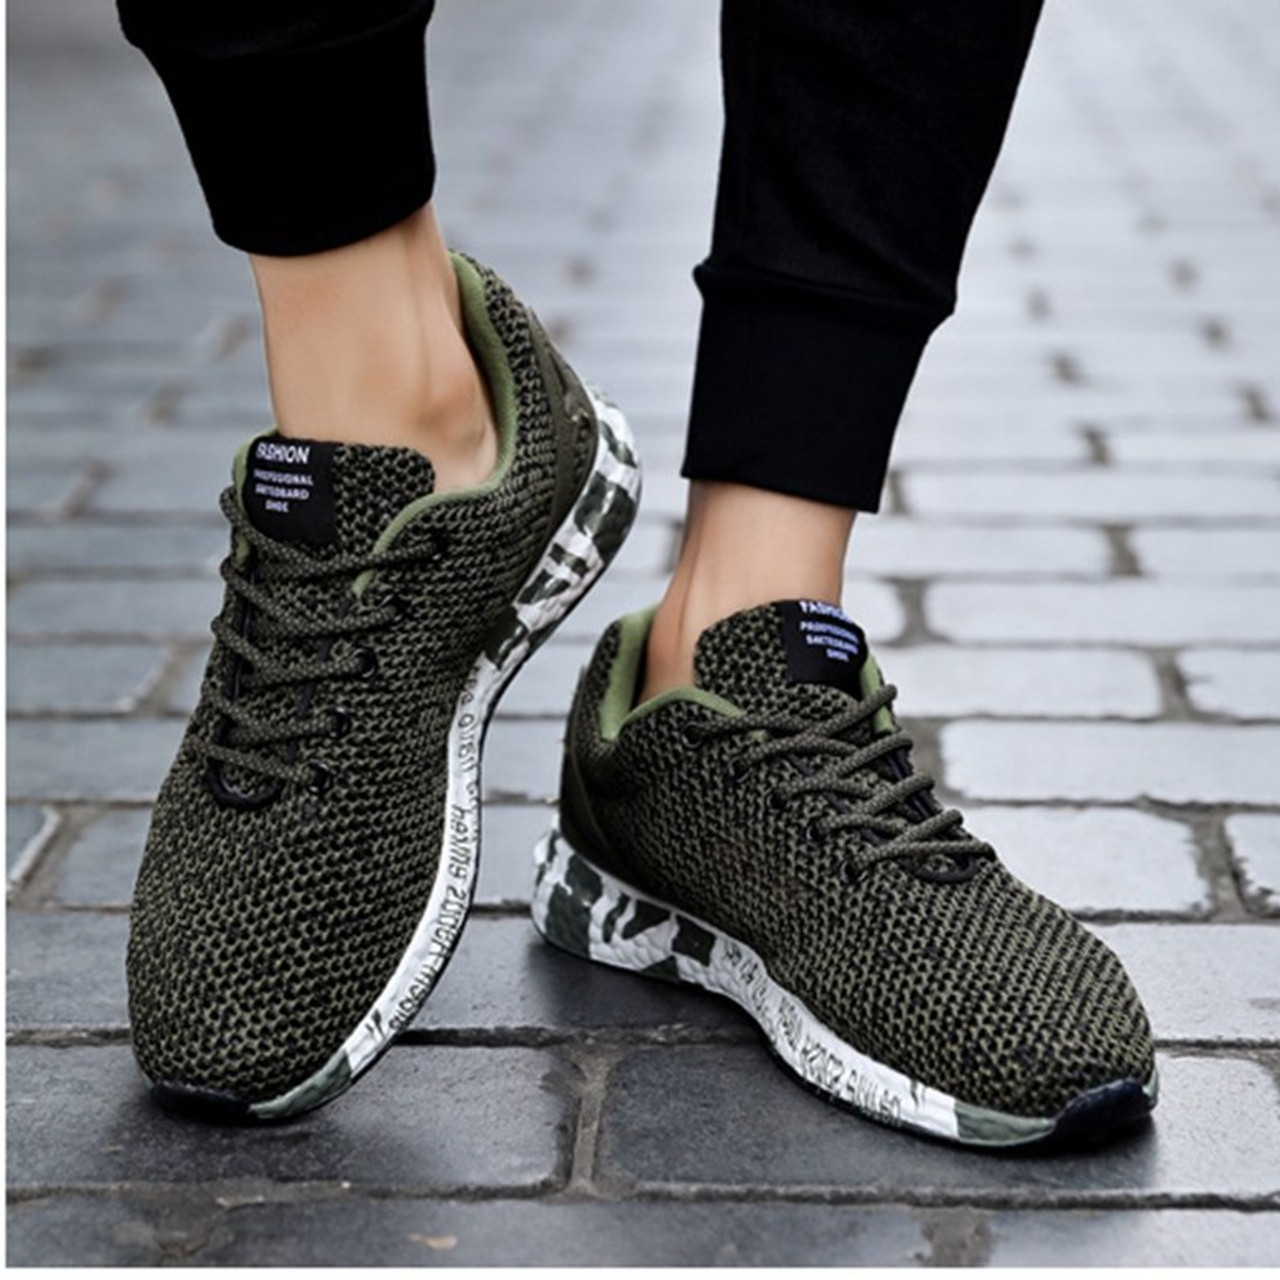 c4742b06baf67 ... 2018 Summer New Running Shoes Men Light Mesh Shoes Comfortable Men  Sports Sneakers Breathable Free Flexible ...